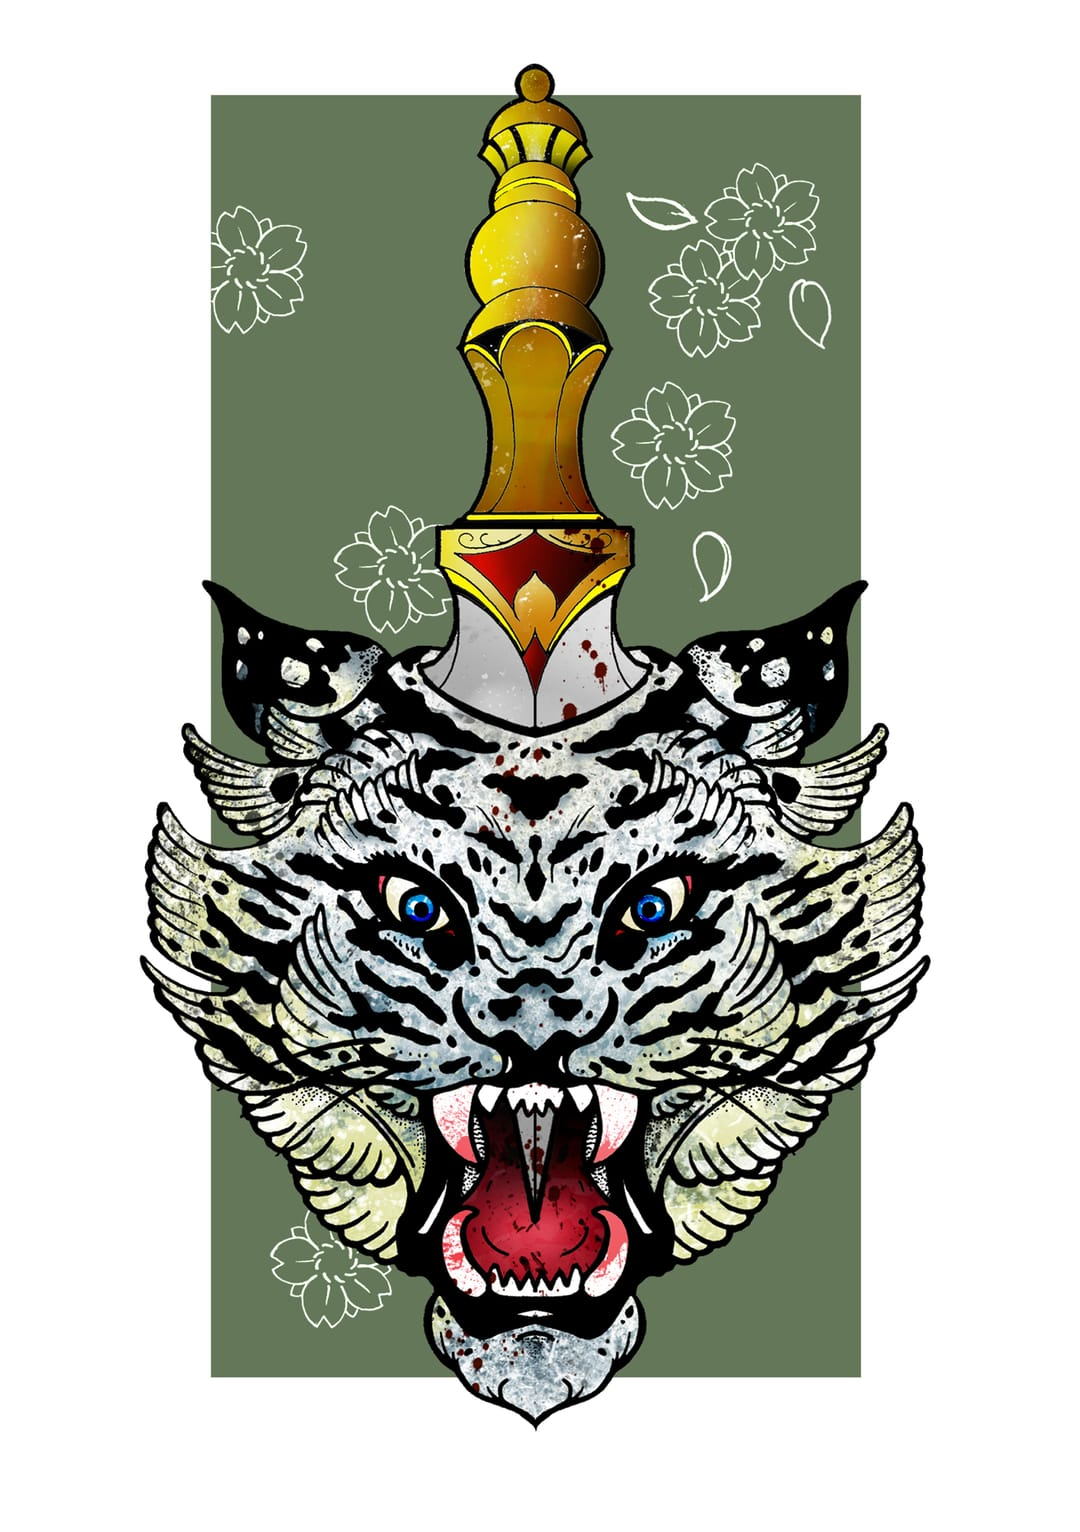 Dagger and tiger tattoo design by Shaun Williams.